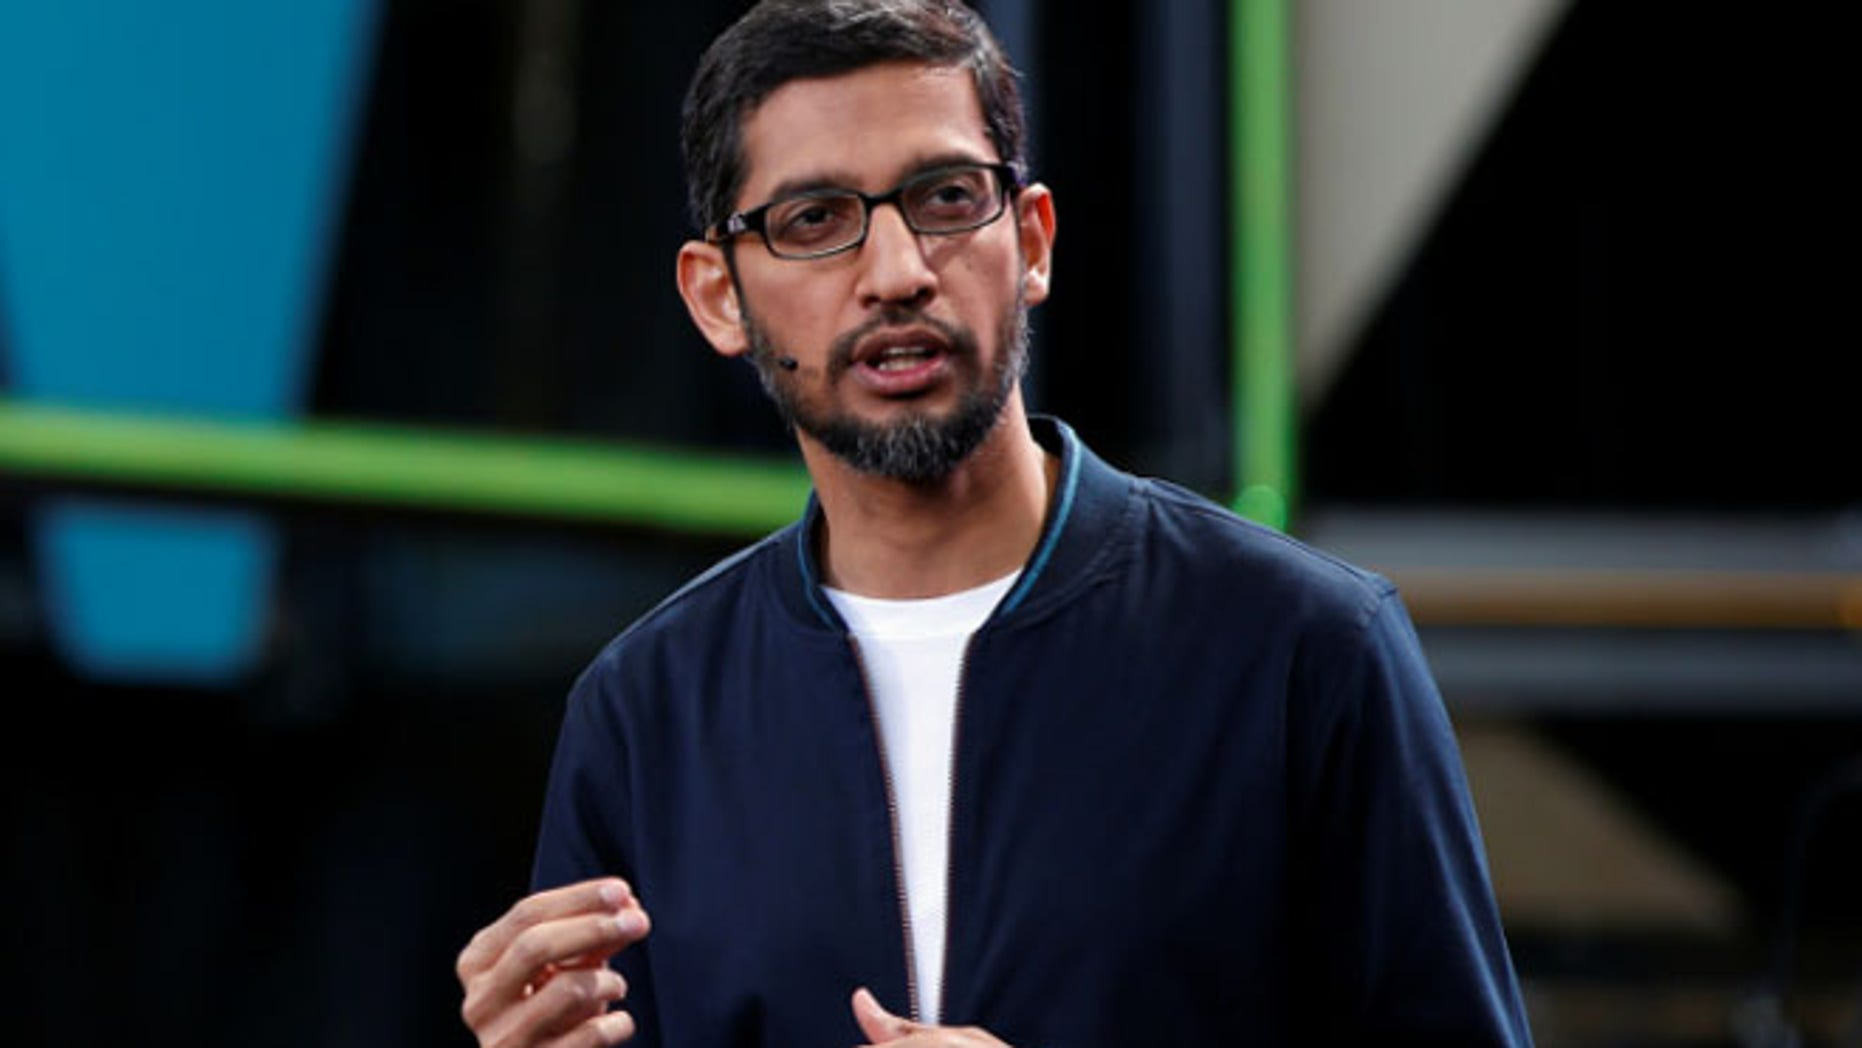 Google's CEO wrote a memo to staffers that it is 'painful' to see the personal cost of President Trump's order on our colleagues.